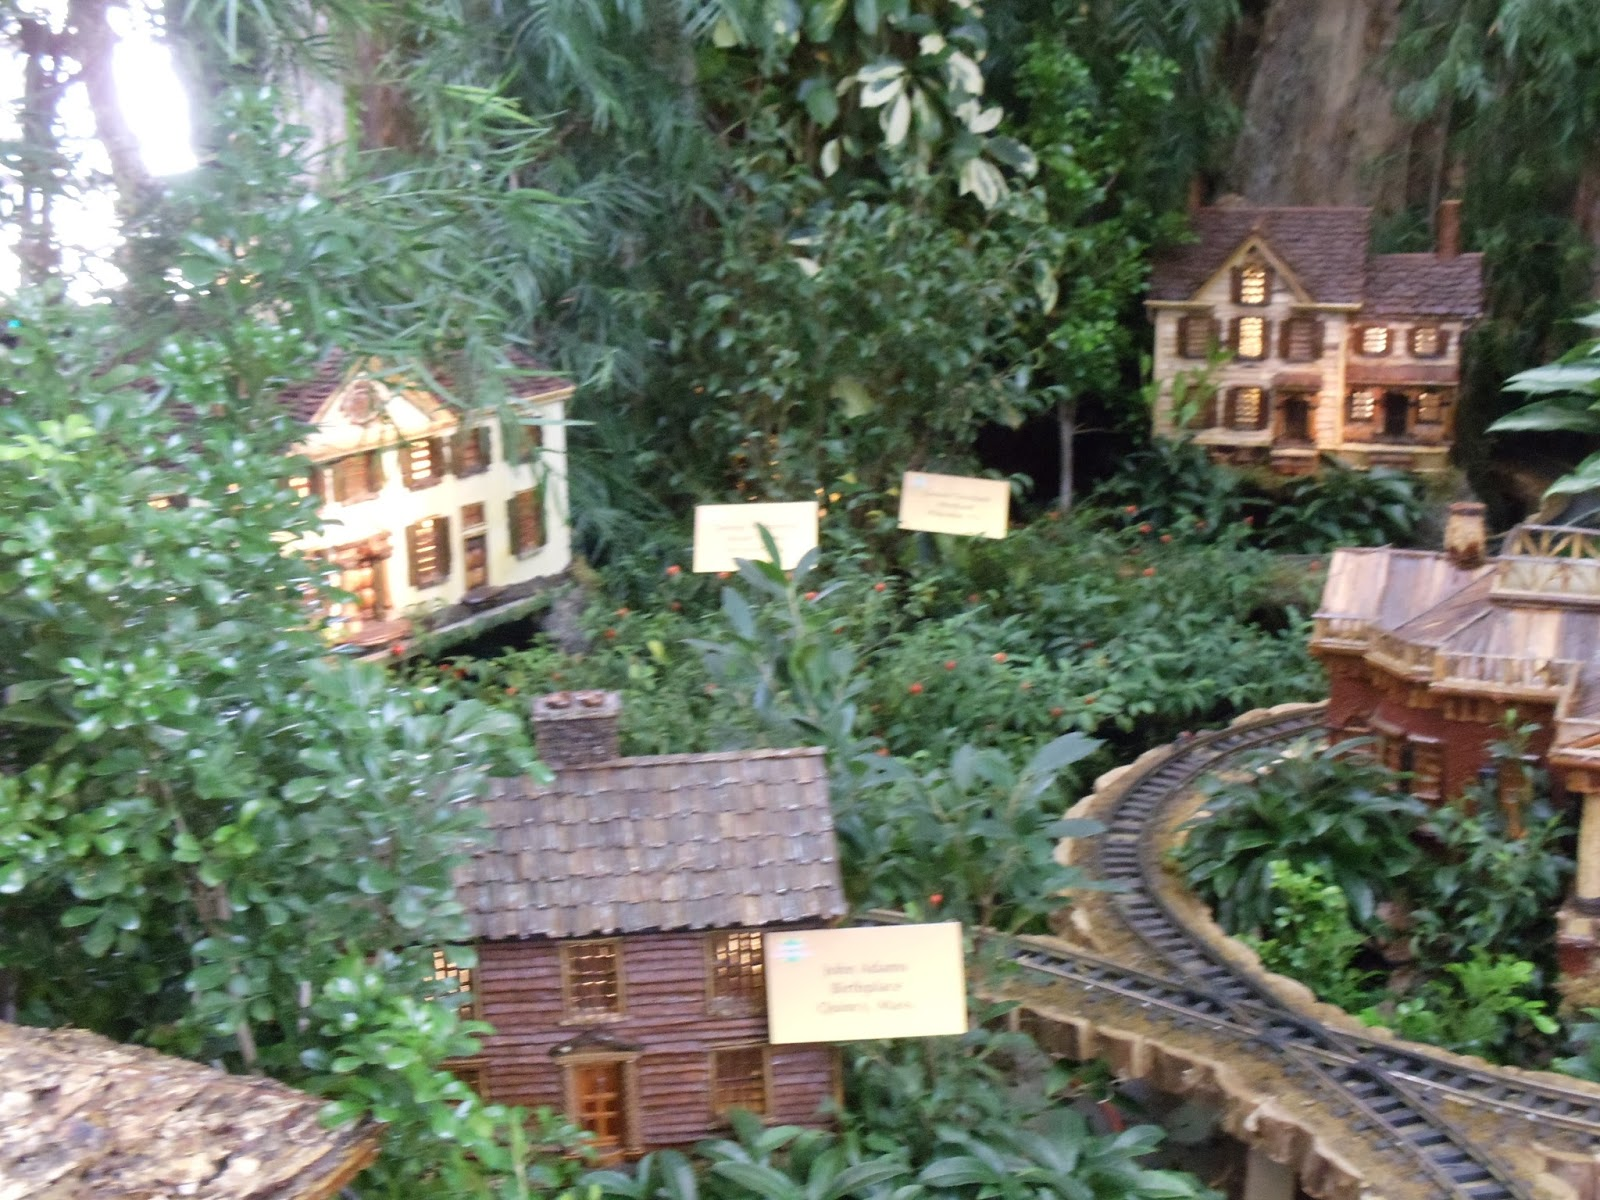 Holiday exhibit at the US Botanic Garden